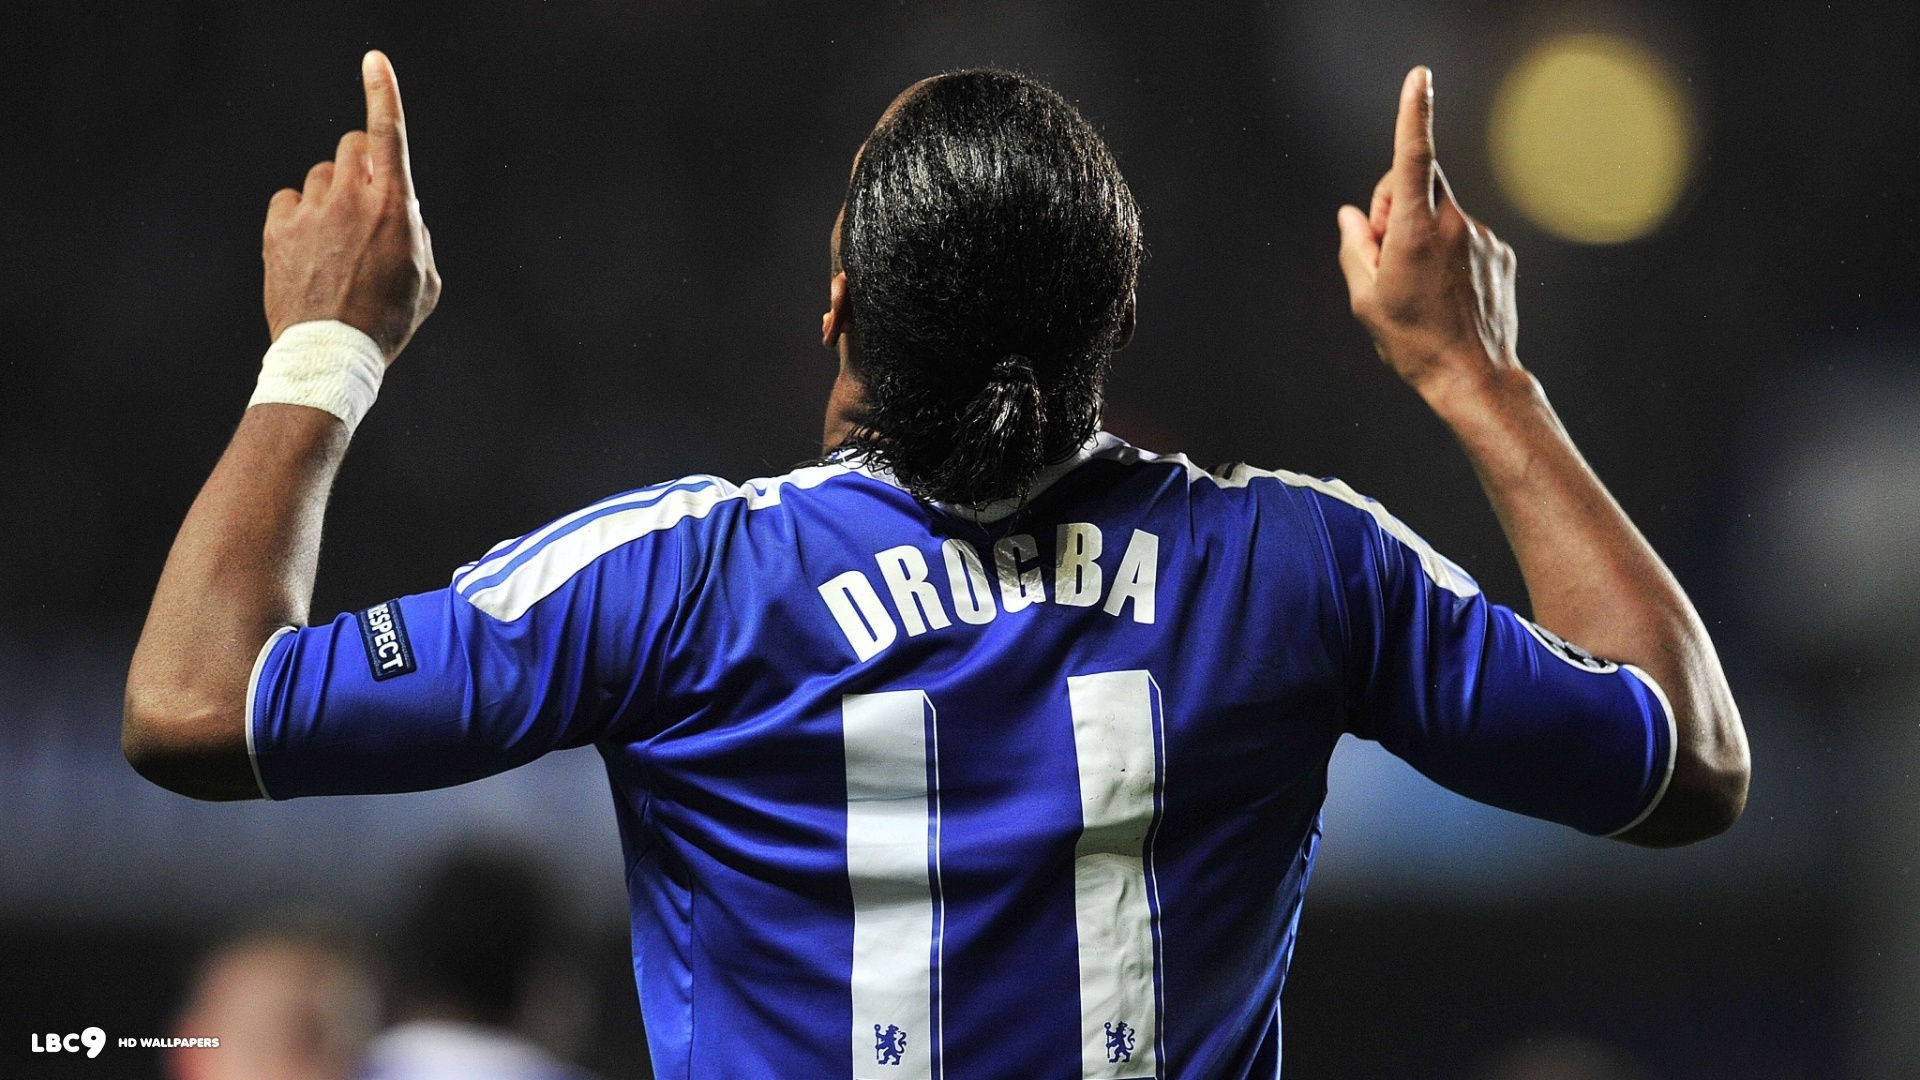 1920x1080 - Didier Drogba Wallpapers 20